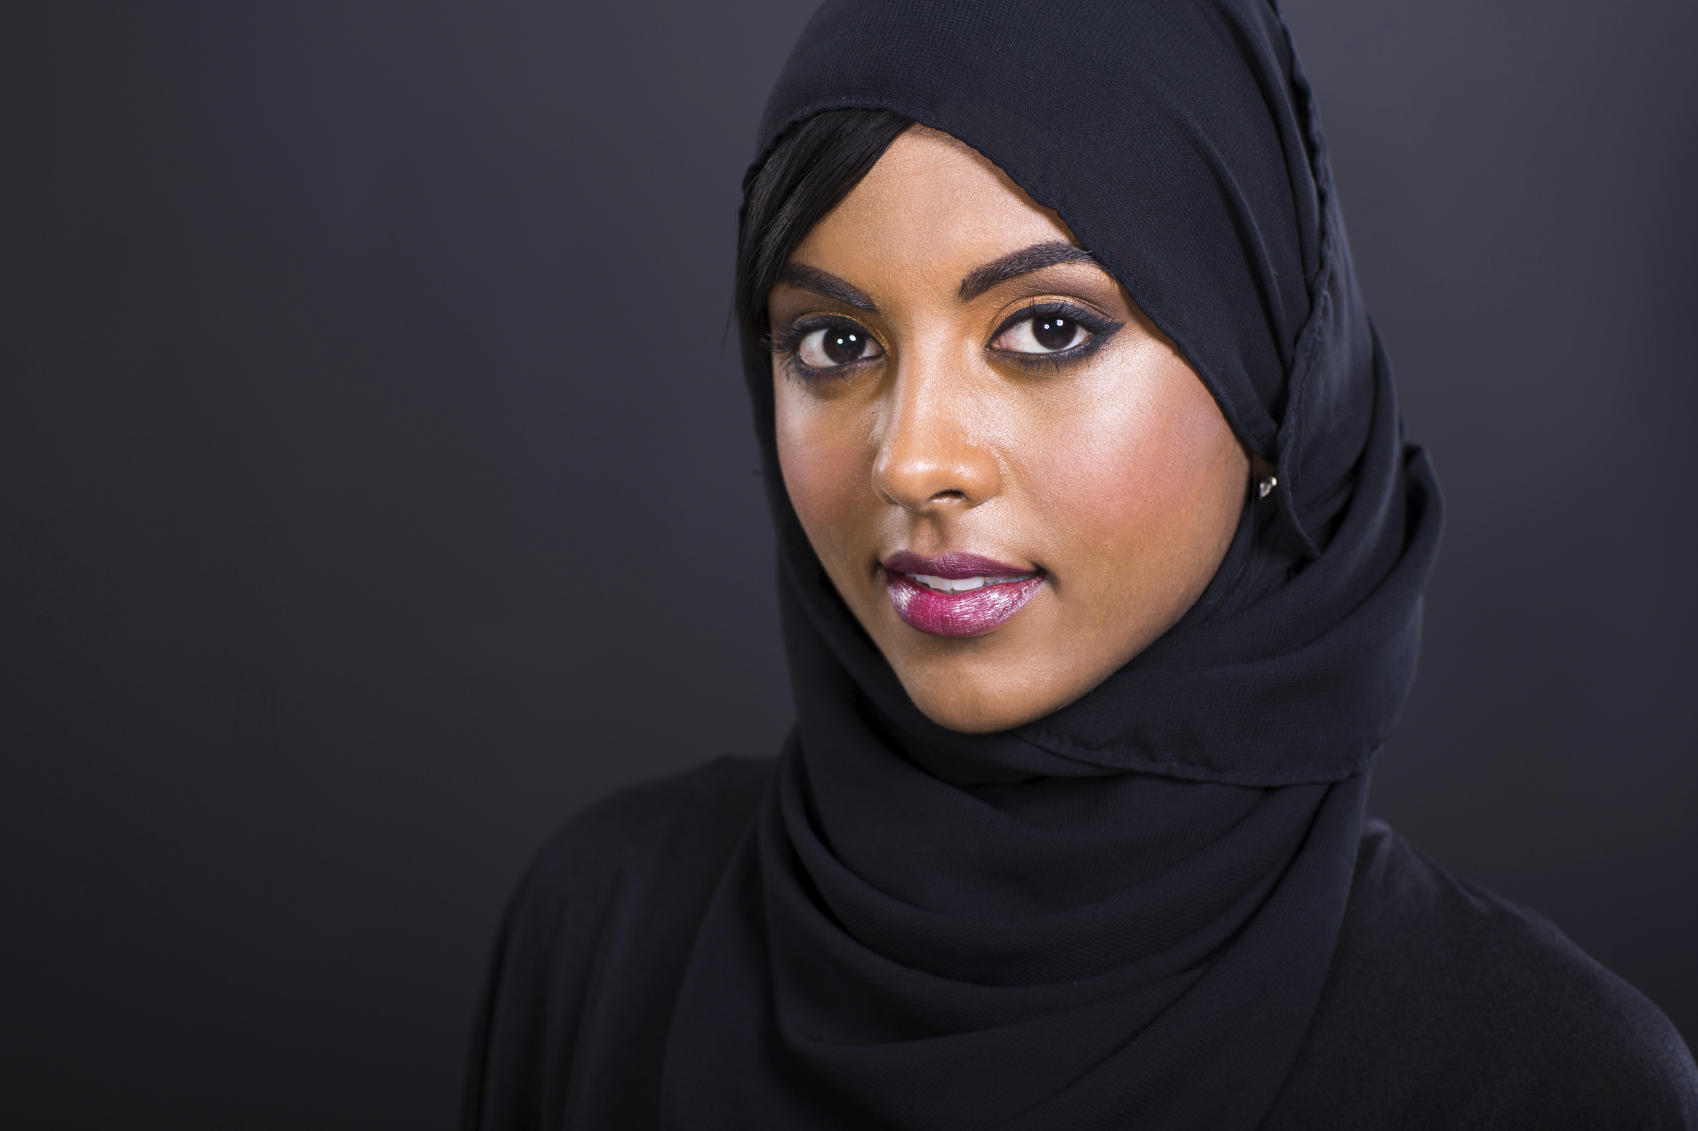 pretty young muslim woman head shot over black background